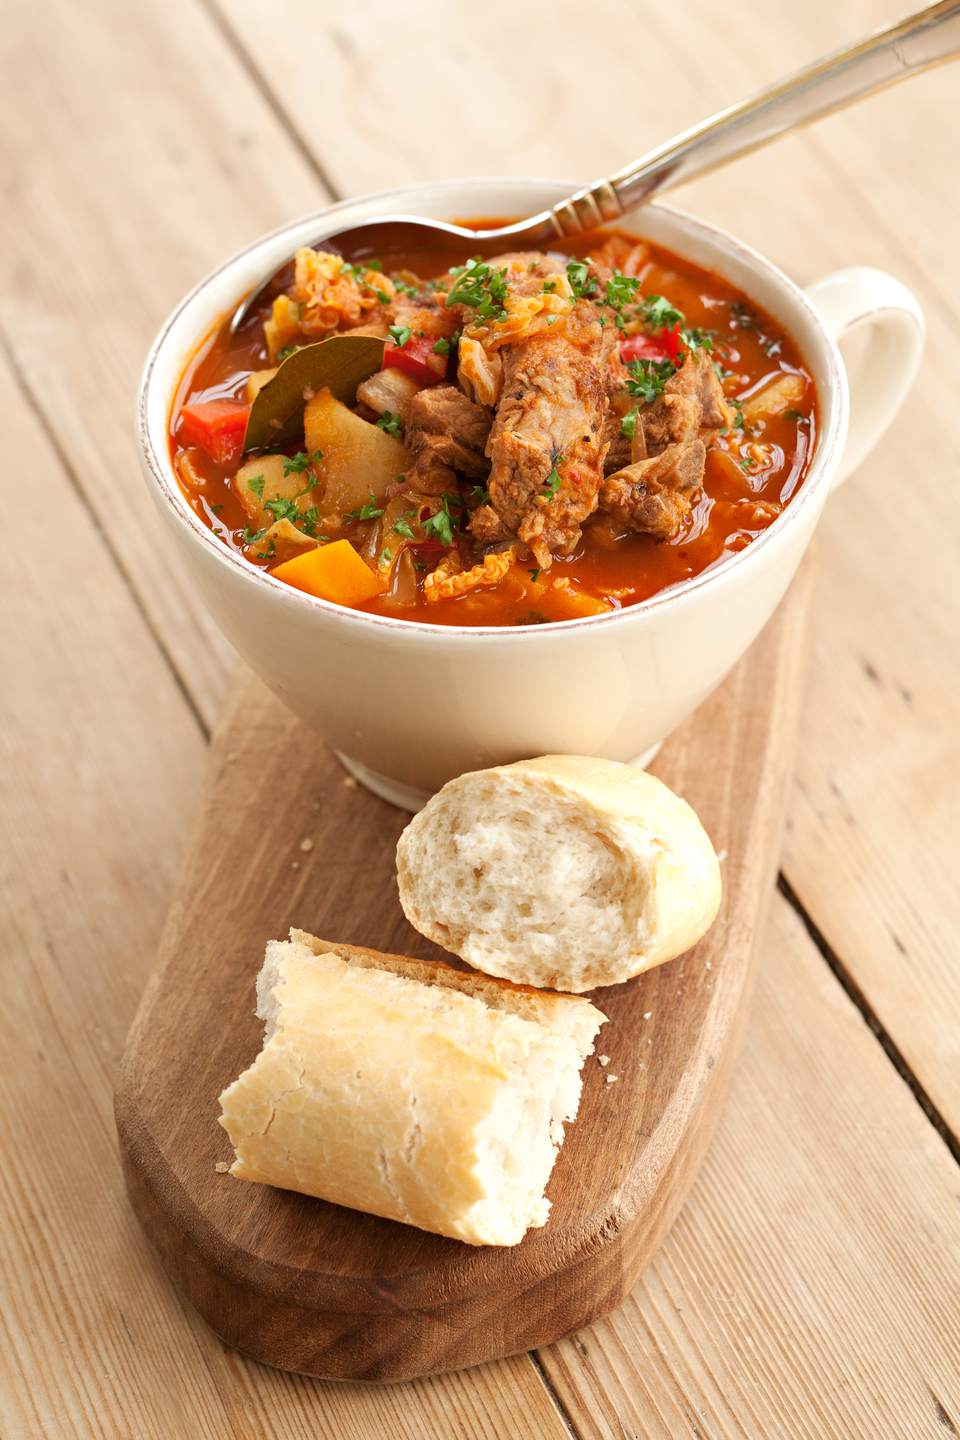 Cabbage soup with pork rib